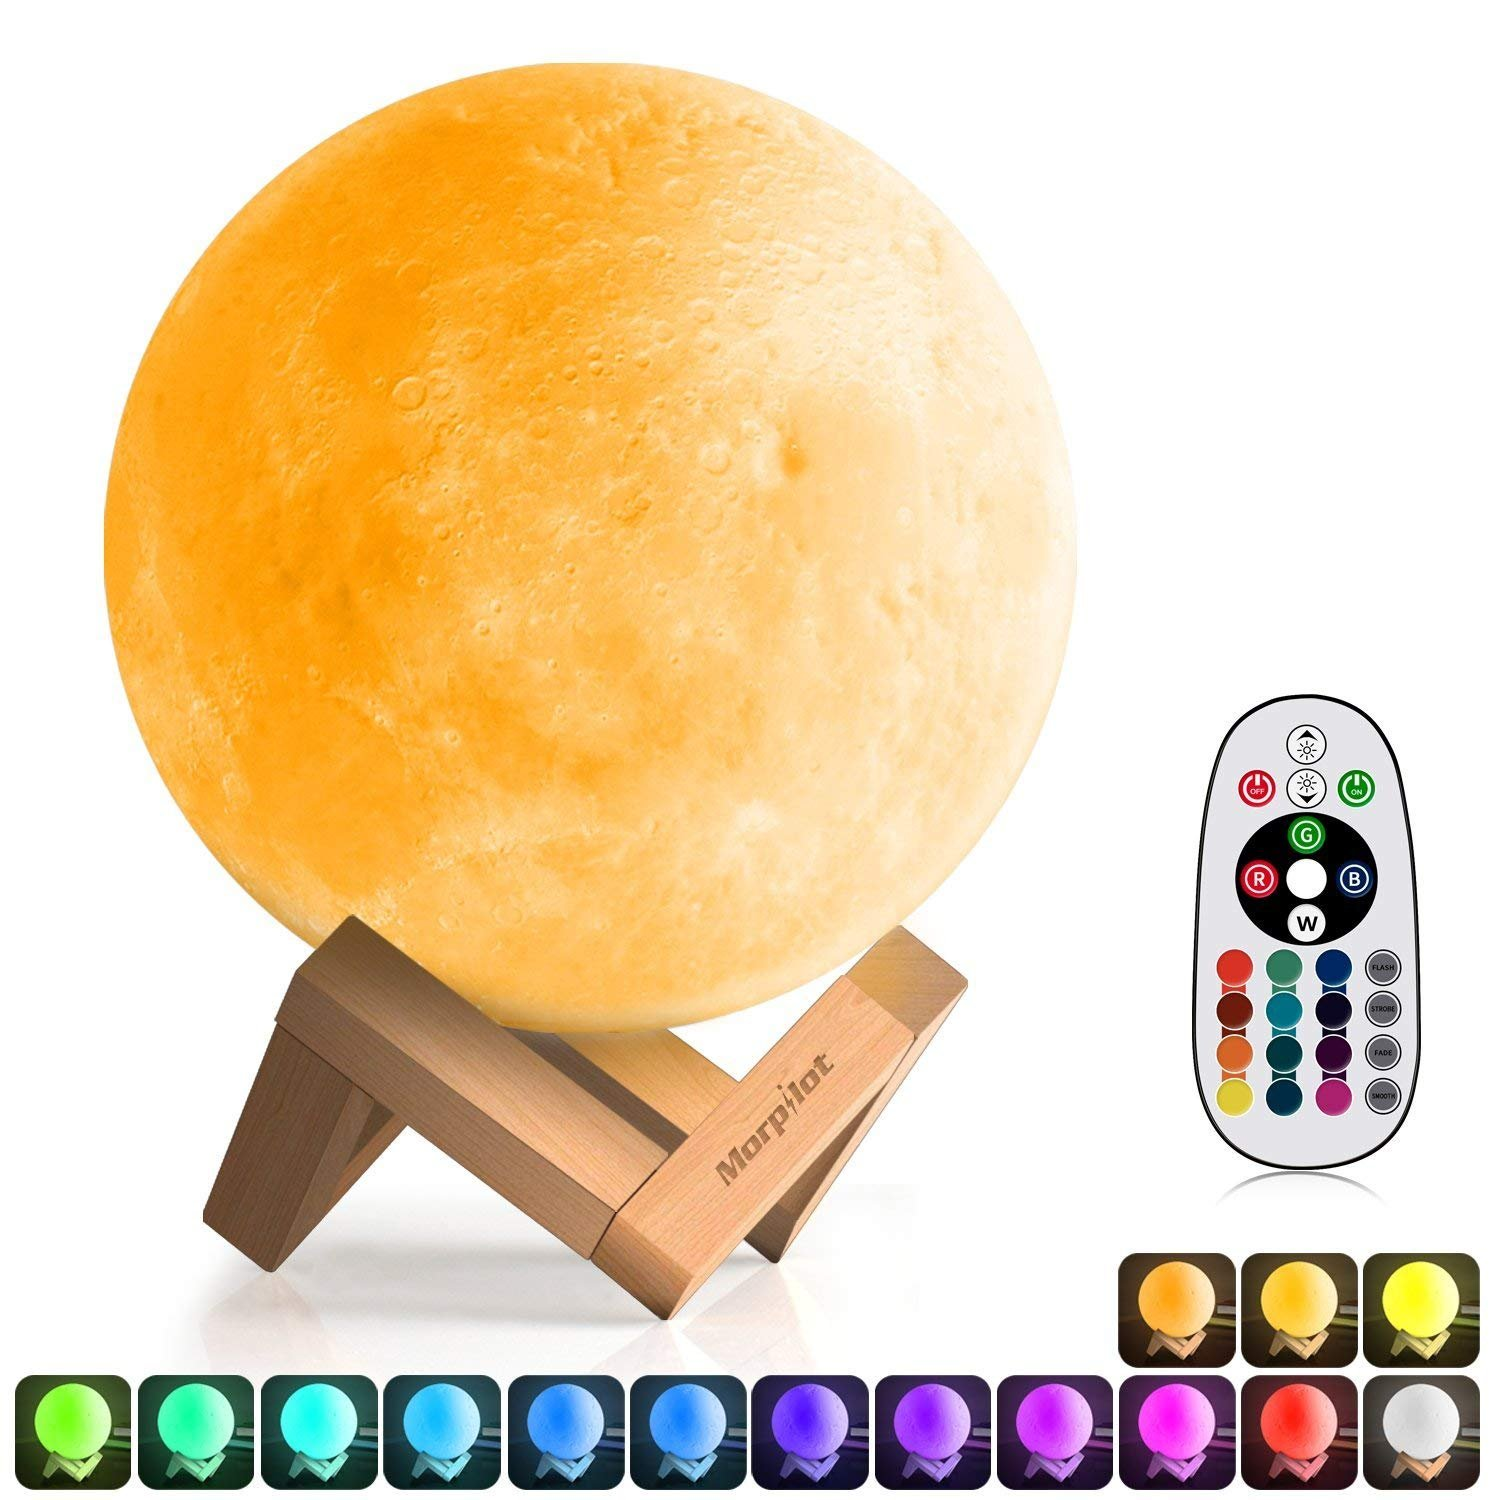 3D Moon Lamp (Diameter 5.9 inch), Morpilot 16 Colors 3D Print Moon Light Home Decorative Lights Night Light with Remote & Touch Control and USB Recharge for Baby Kids Lover Birthday Gifts (5.9) Morpilot180811